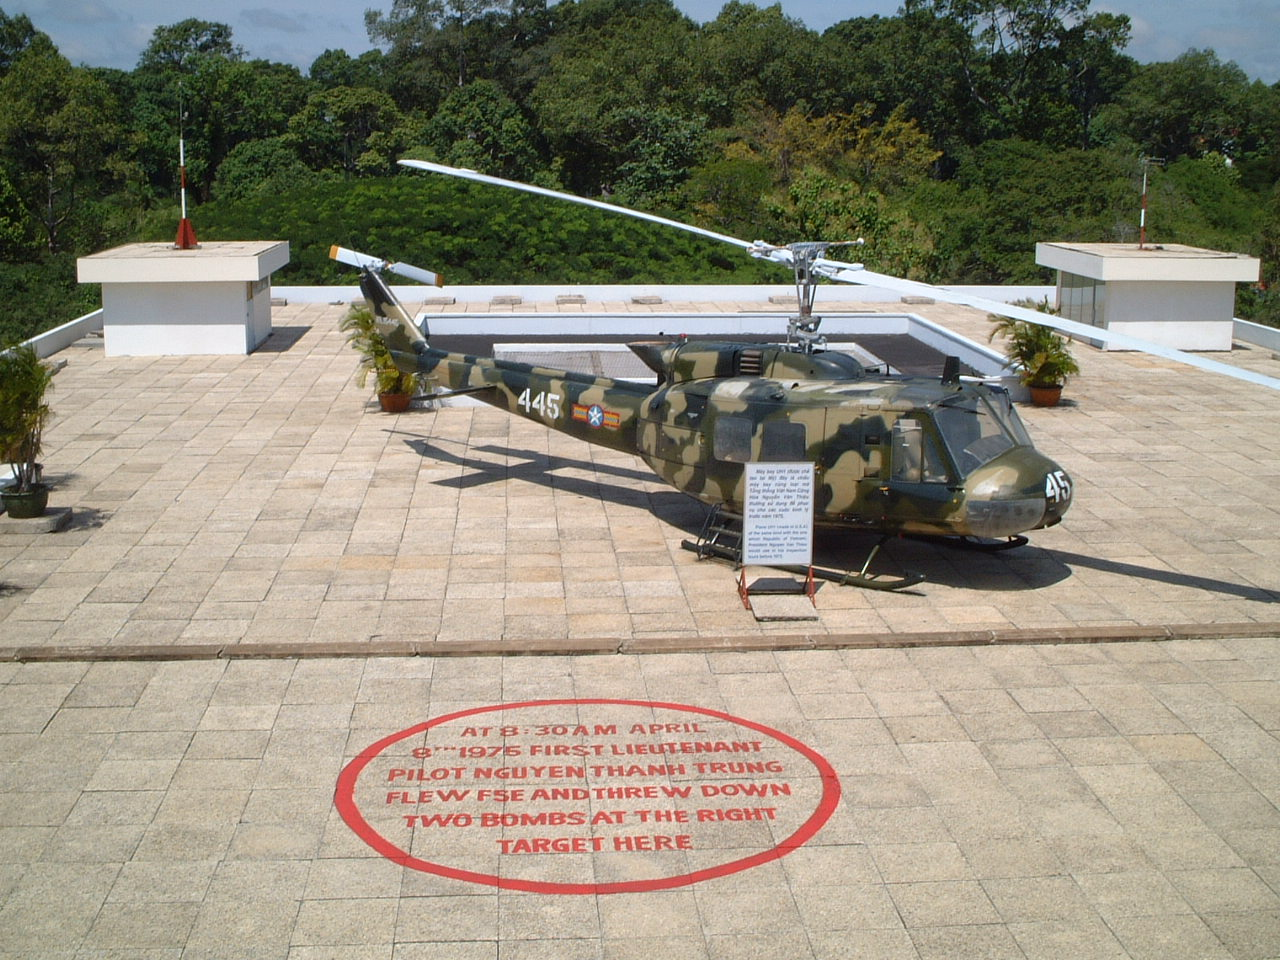 he Last Batch Of American Officials Were Forced To Fly Away From The Top Of The President's Palace In Helicopter